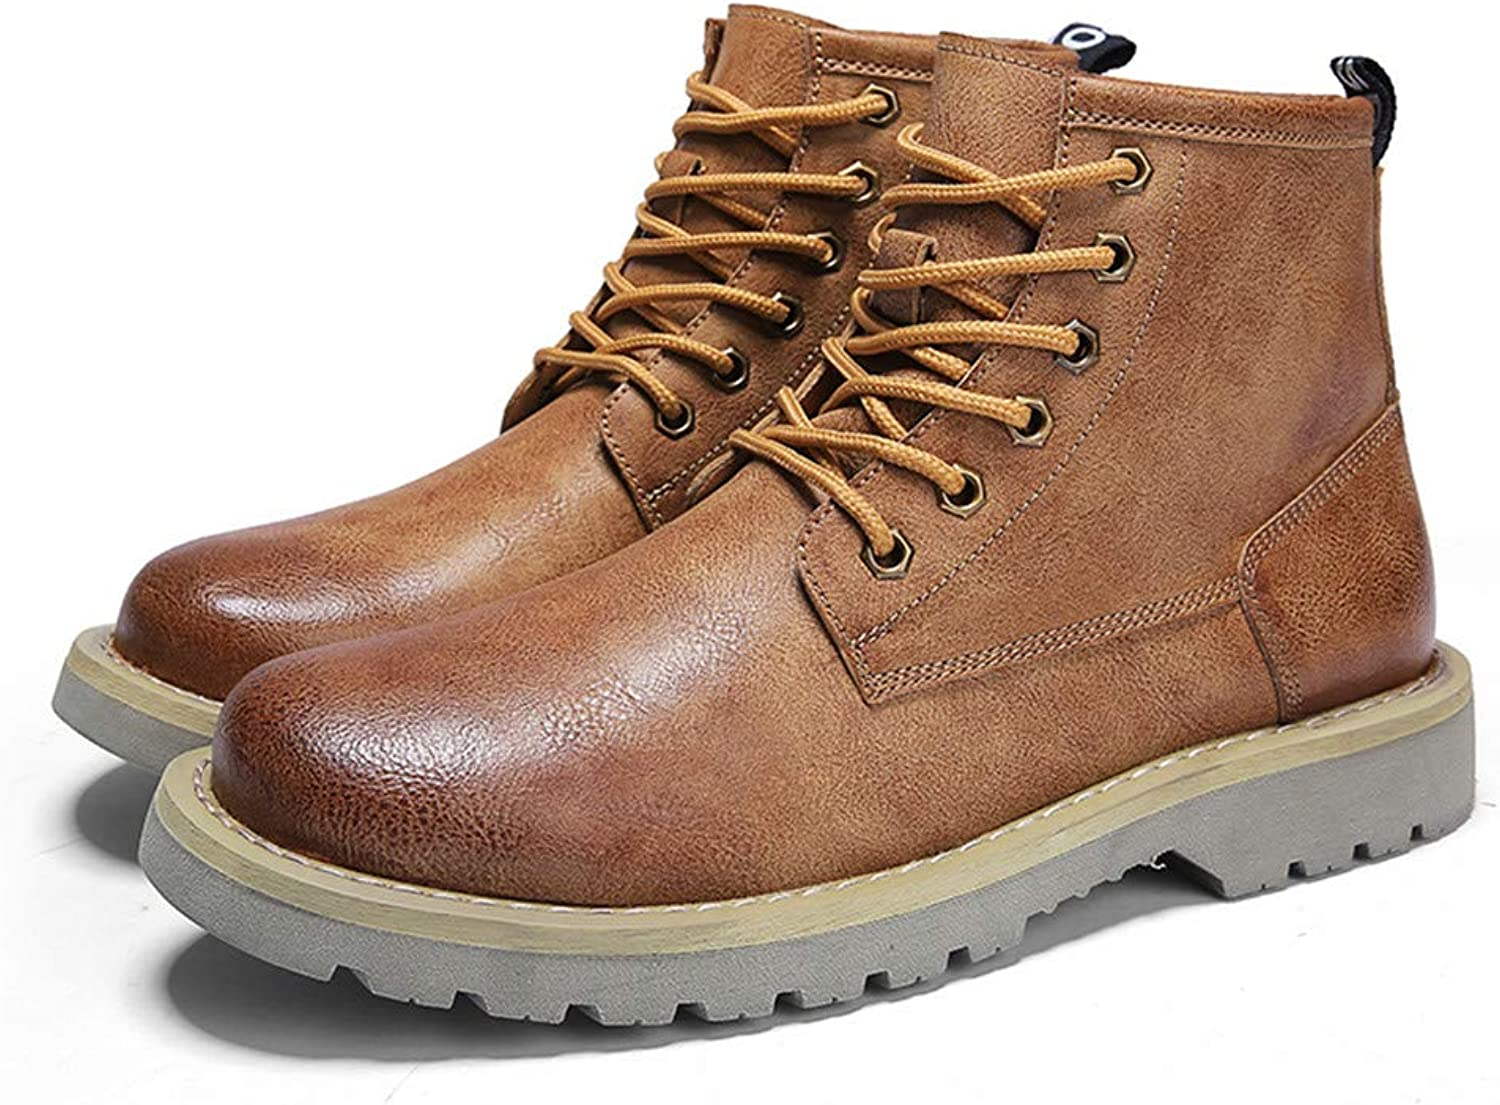 Dig dog bone Men's Ankle Boots Casual Stylish and Comfortable Round Toe Outsole Work shoes